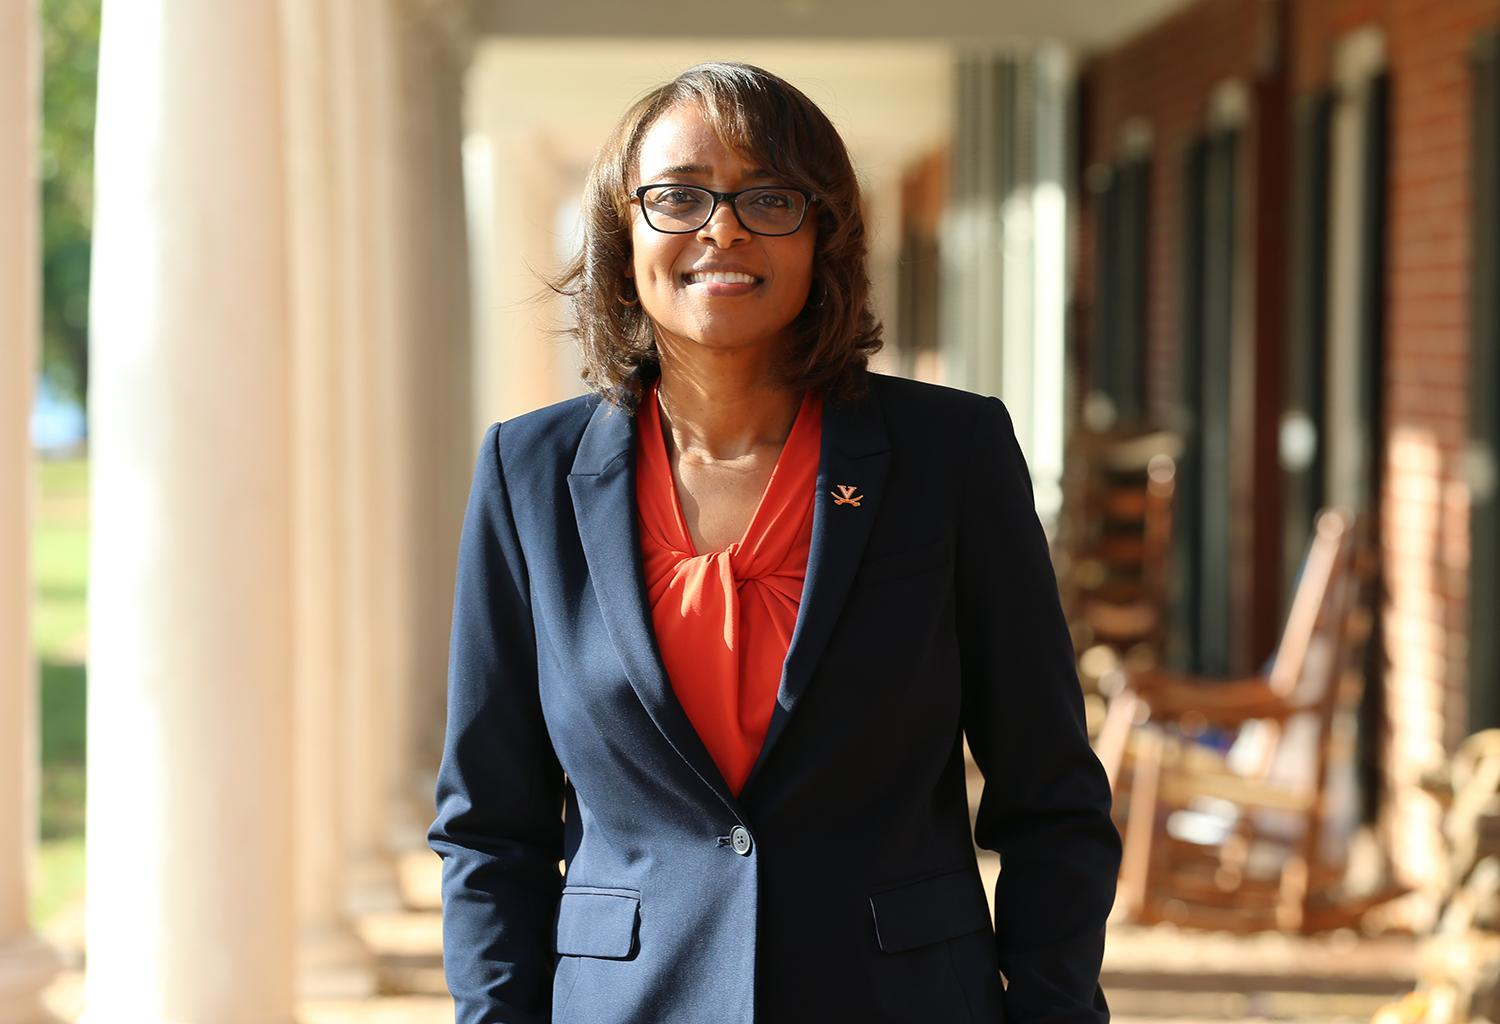 Carla Williams joins the University of Virginia as director of athletics after a distinguished career at the University of Georgia. (Photo by Matt Riley, UVA Athletics)